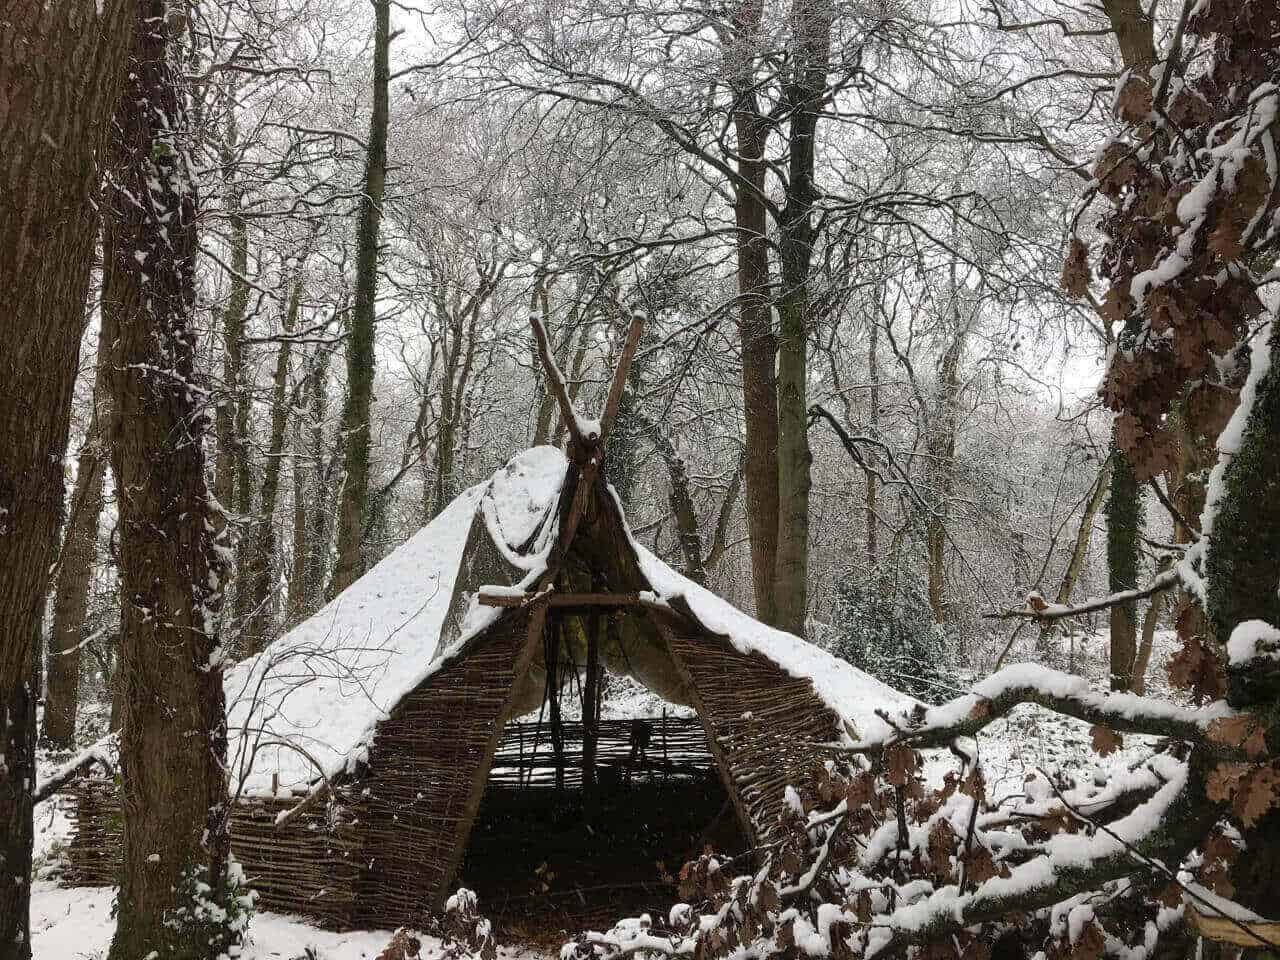 Bushcraft Camp under snow